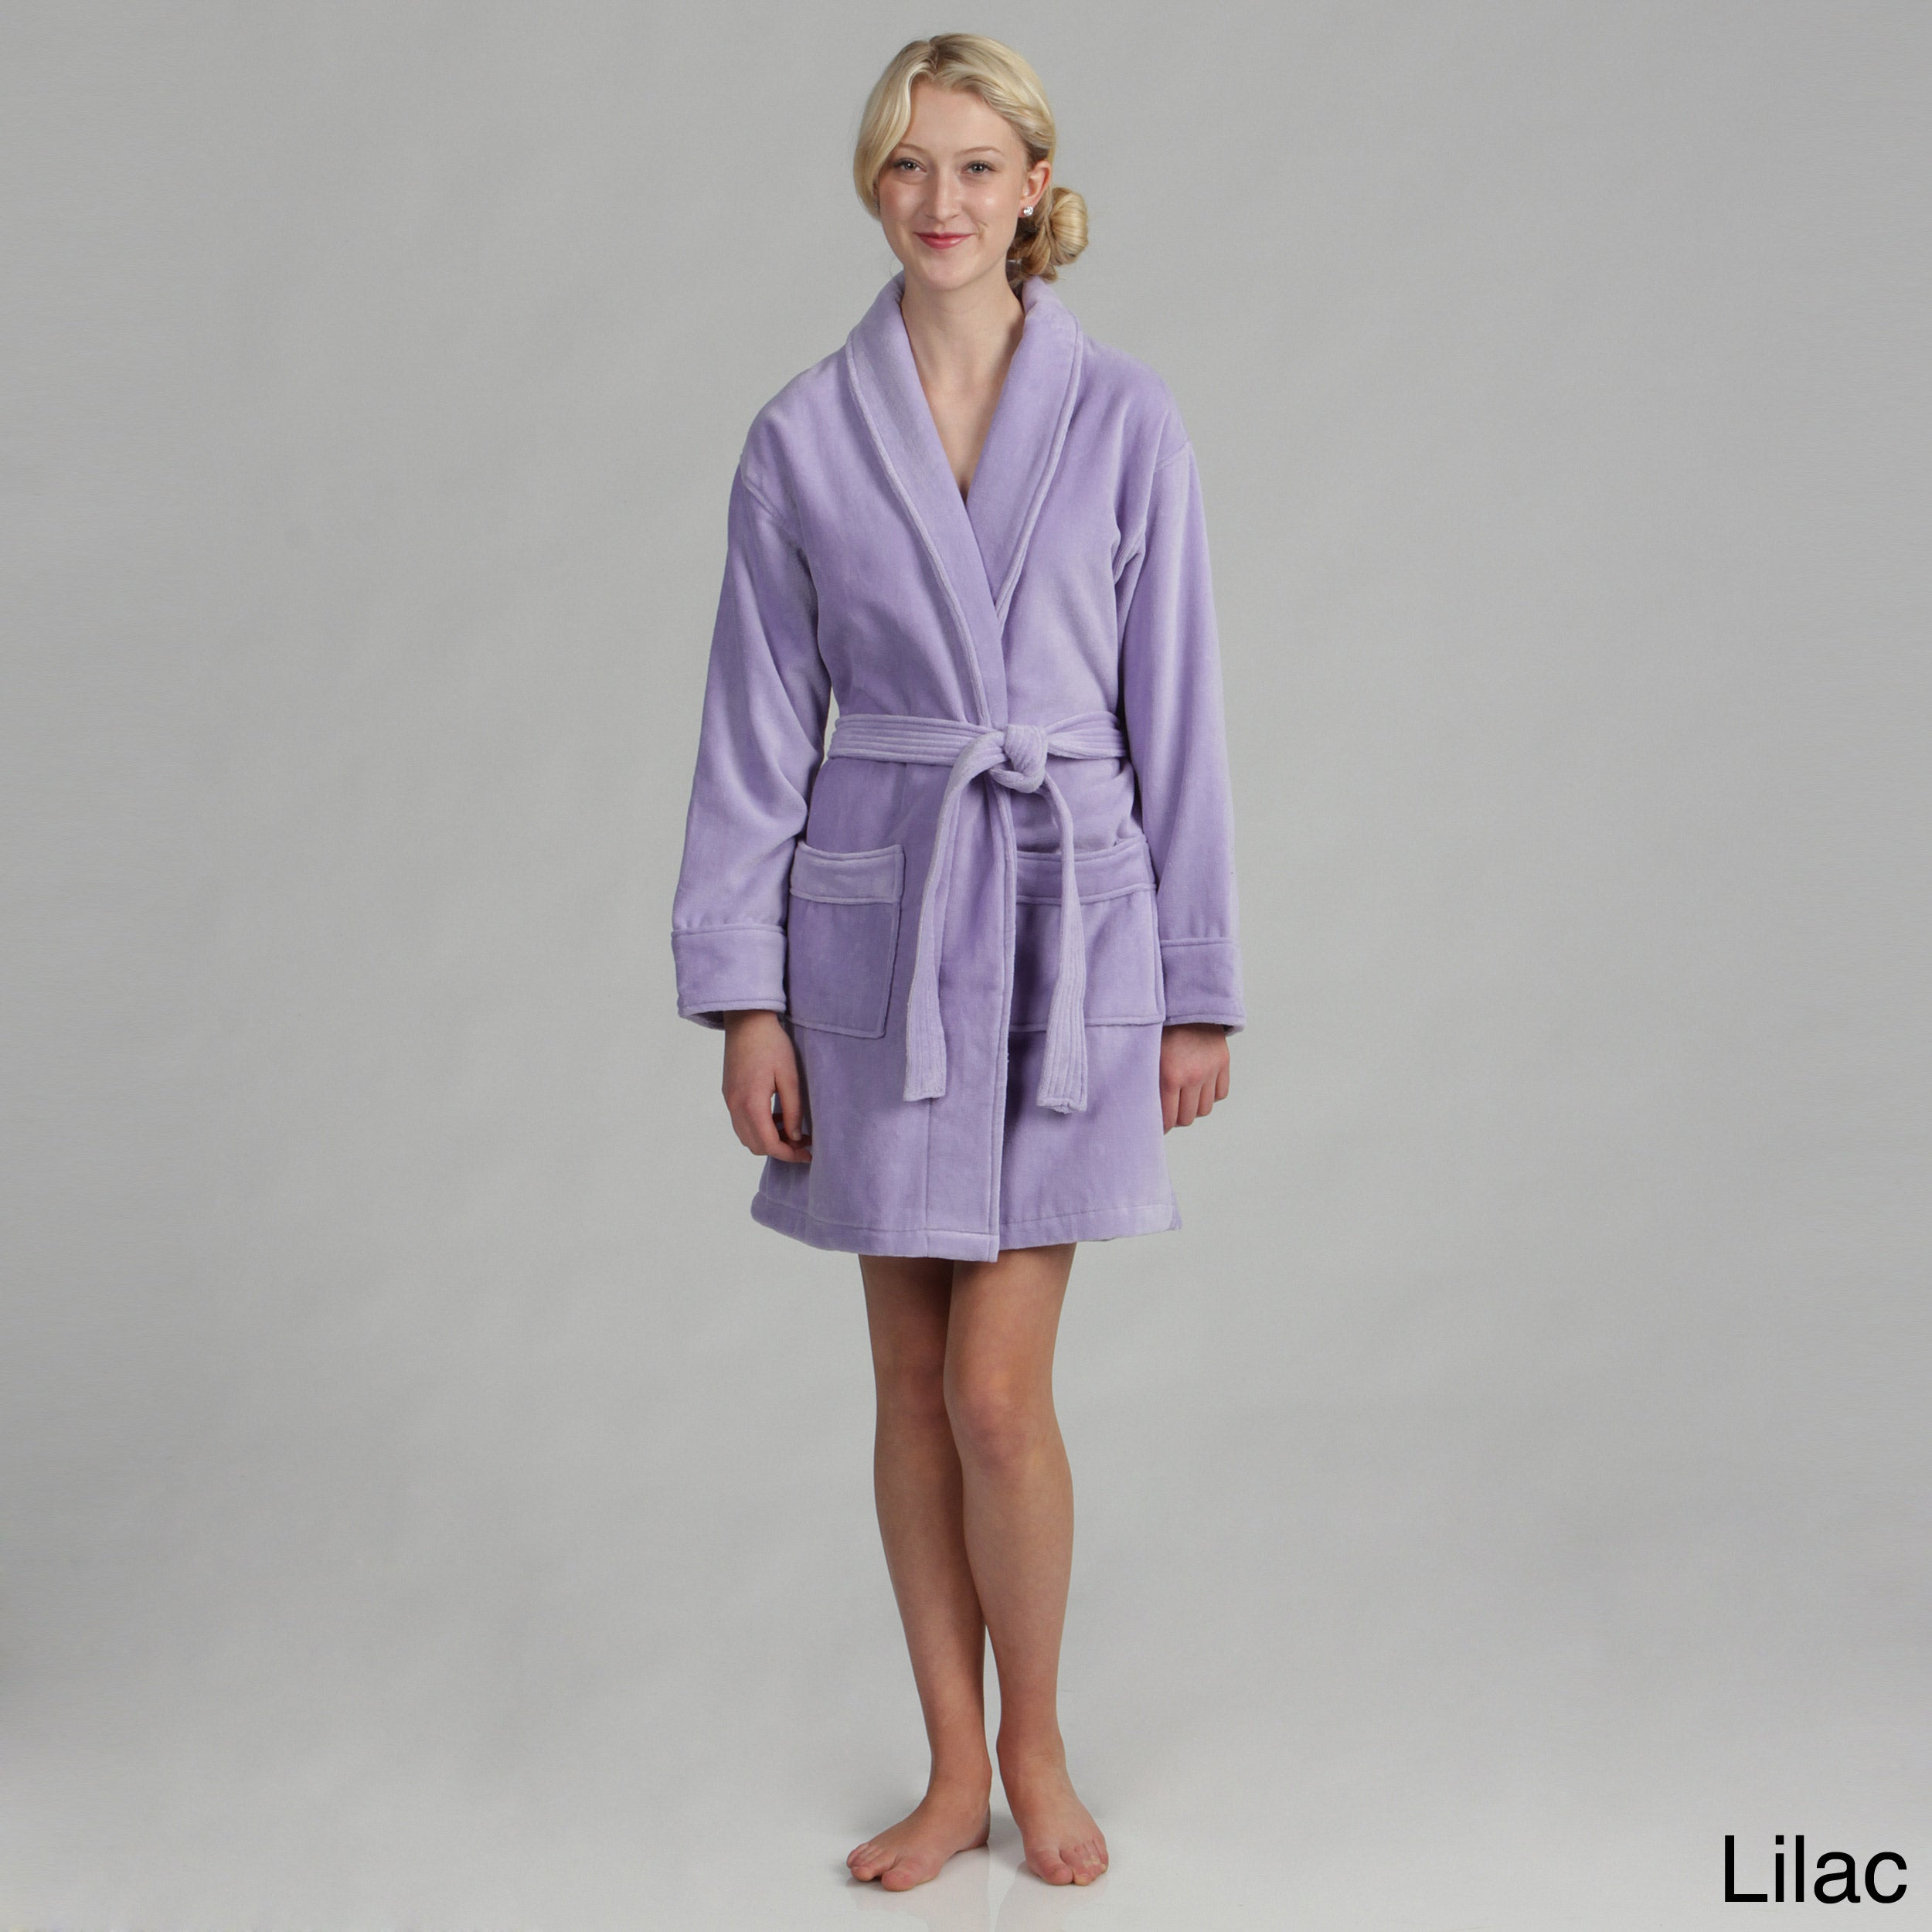 Terry Cloth Robe: Shop for a Terry Cloth Robe at Macy's